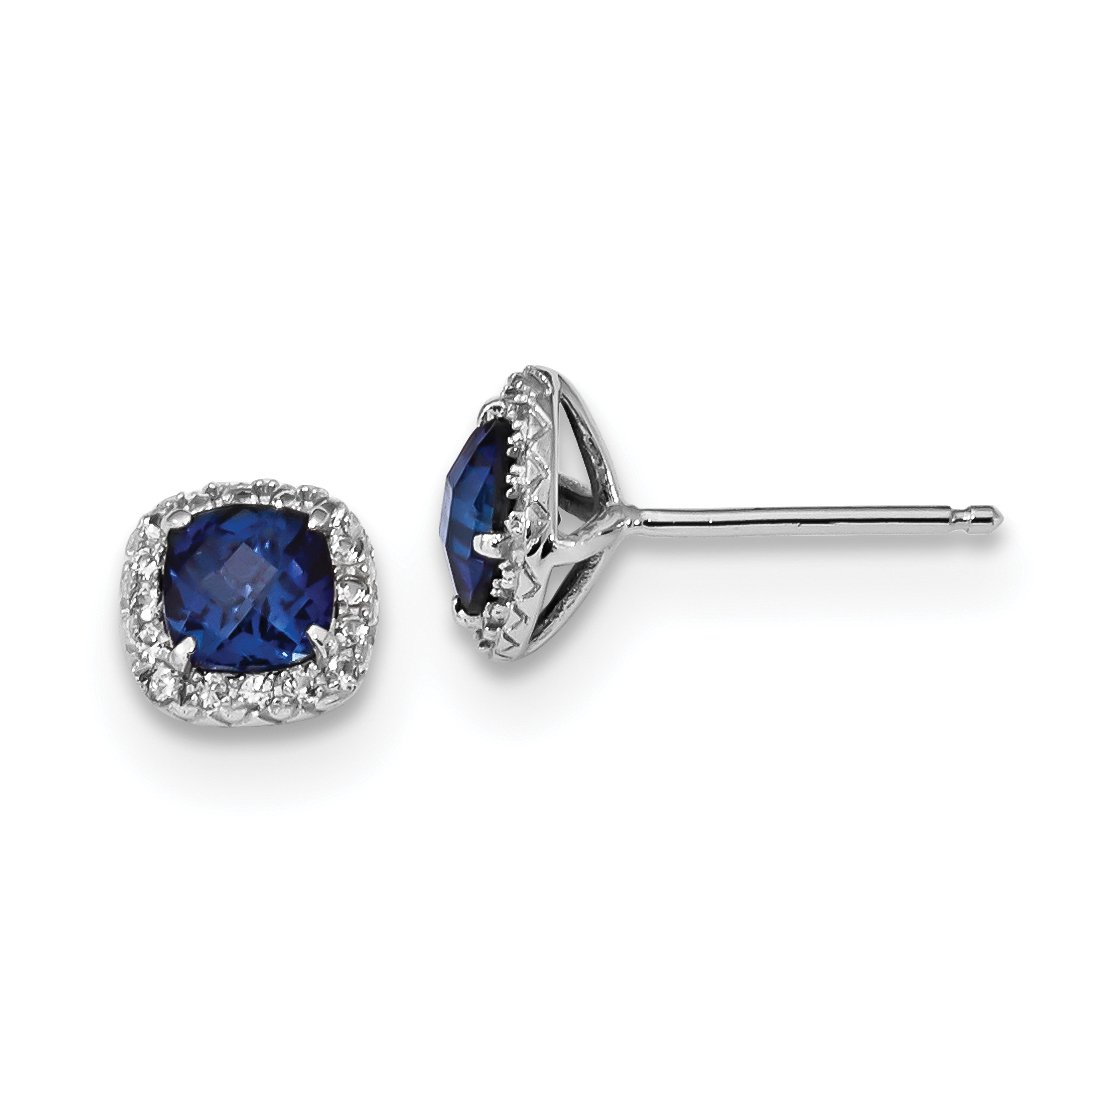 ICE CARATS 925 Sterling Silver Created Blue White Sapphire Post Stud Ball Button Earrings Fine Jewelry Gift For Women Heart